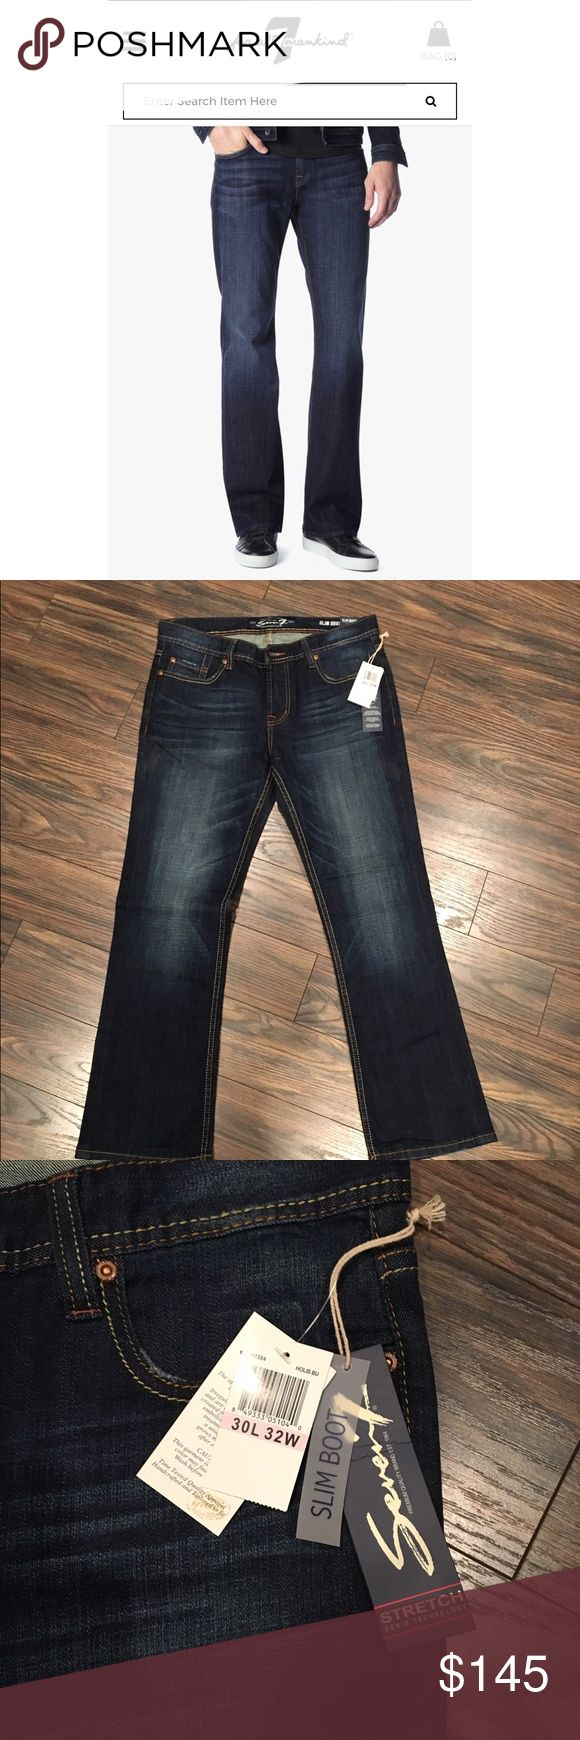 Seven7 Slim Bootcut Jeans NWT 💥flash sale for shipping promotion💥 Slim Bootcut. NWT Seven7 Jeans